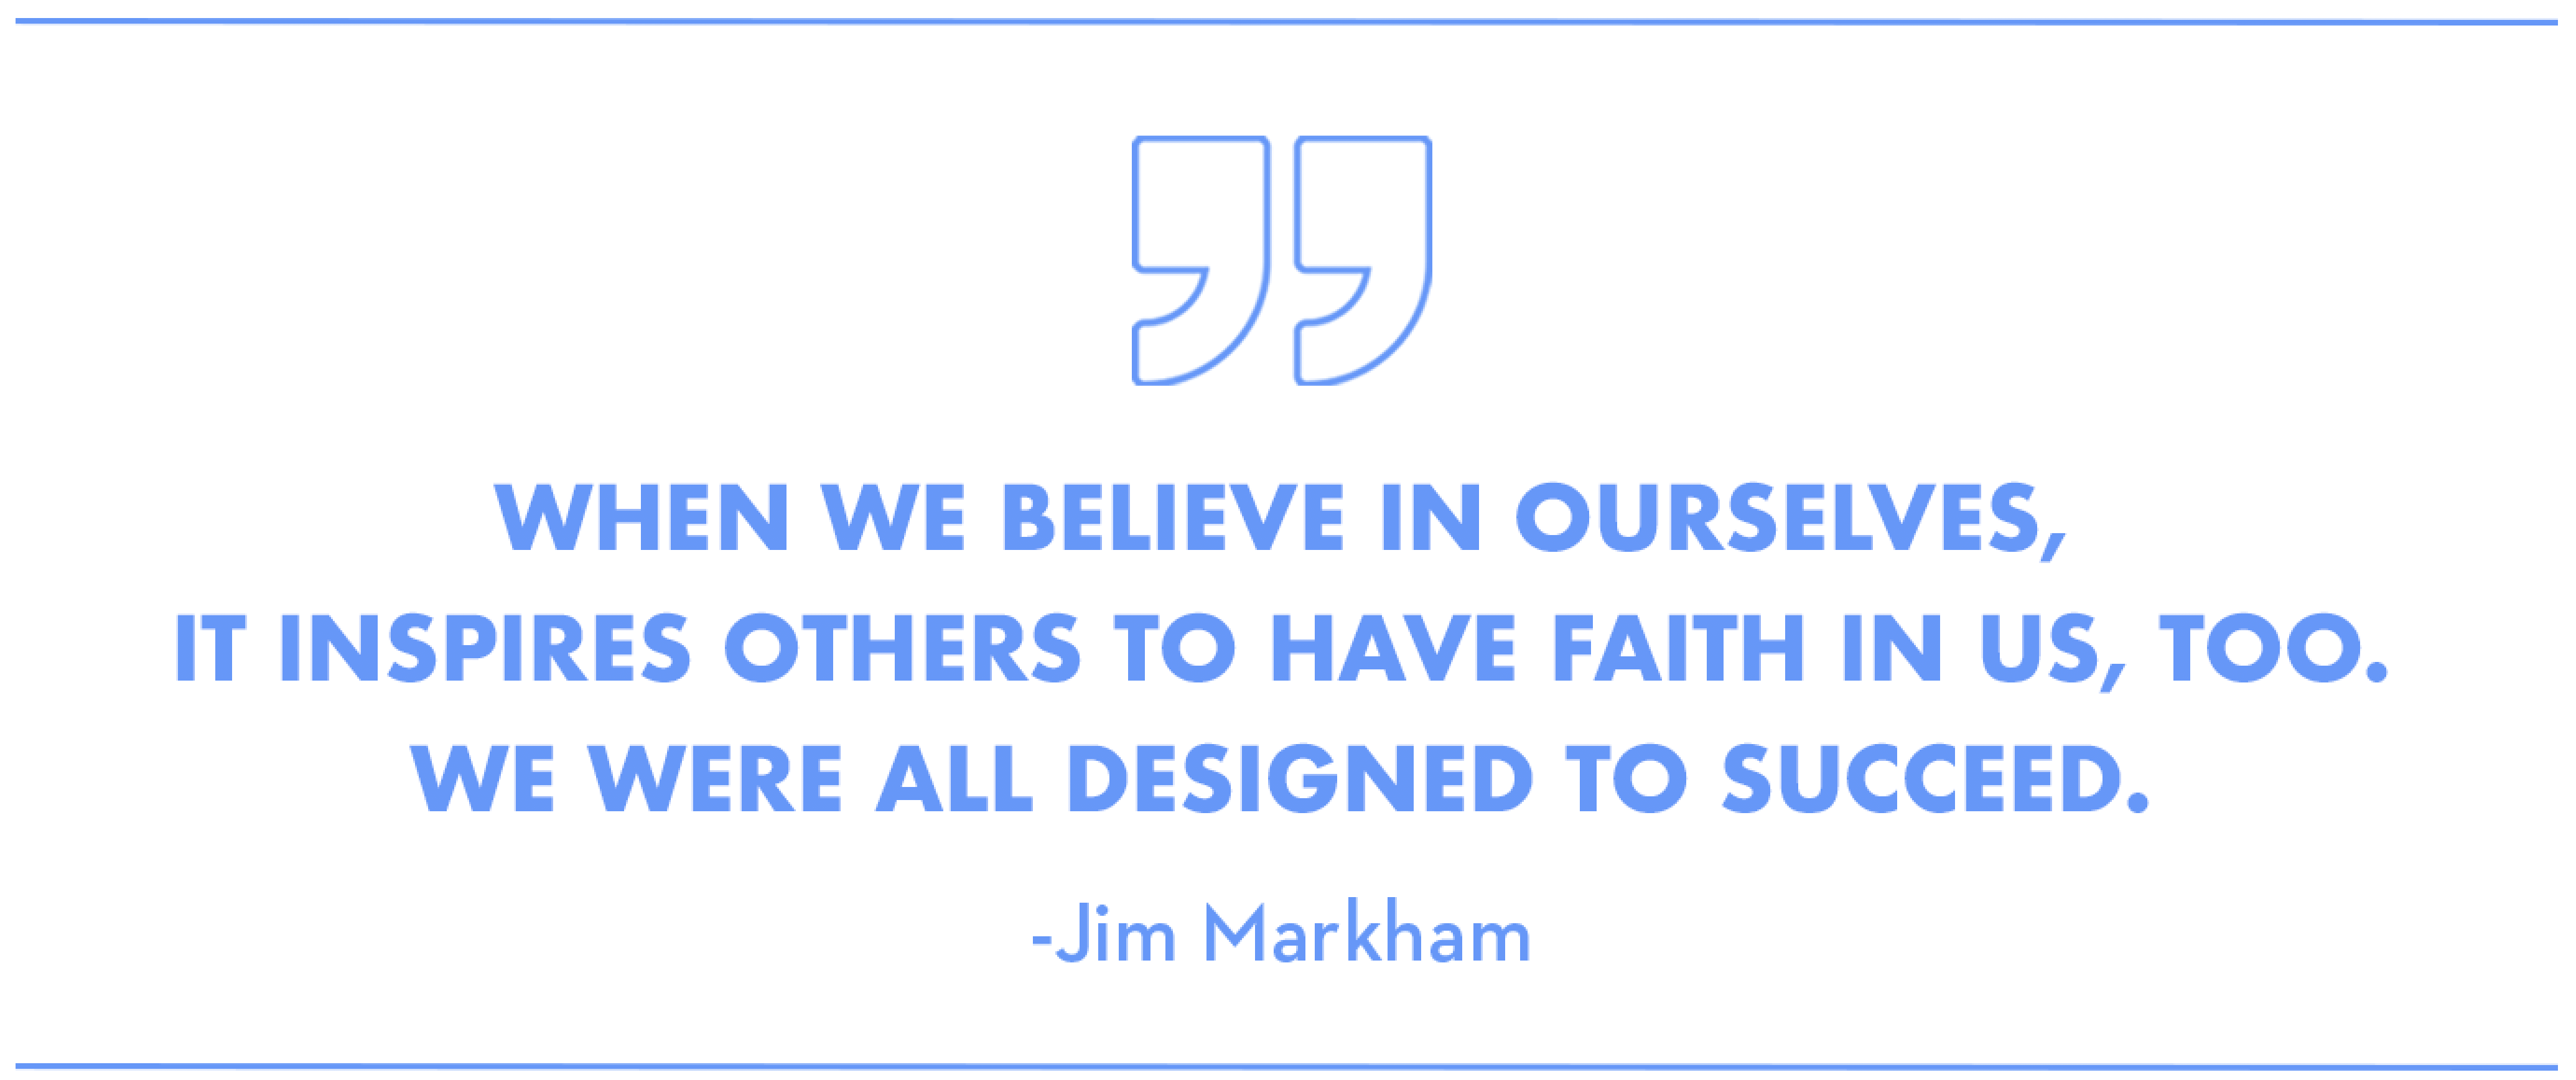 Inspirational Quote from Jim Markham